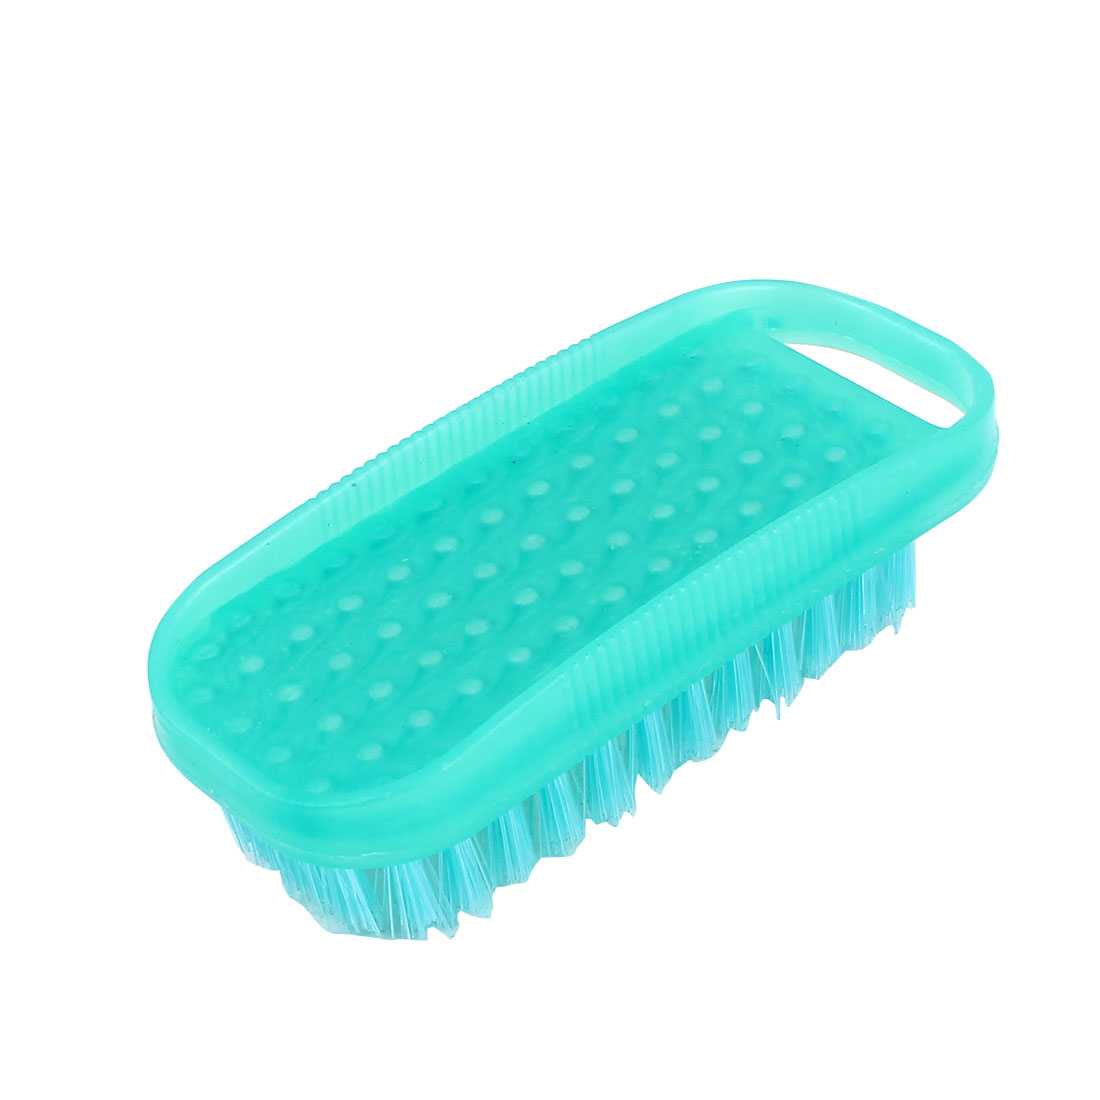 Household Home Laundry Clothes Shoes Plastic Scrubbing Brush 12.5 x 5cm